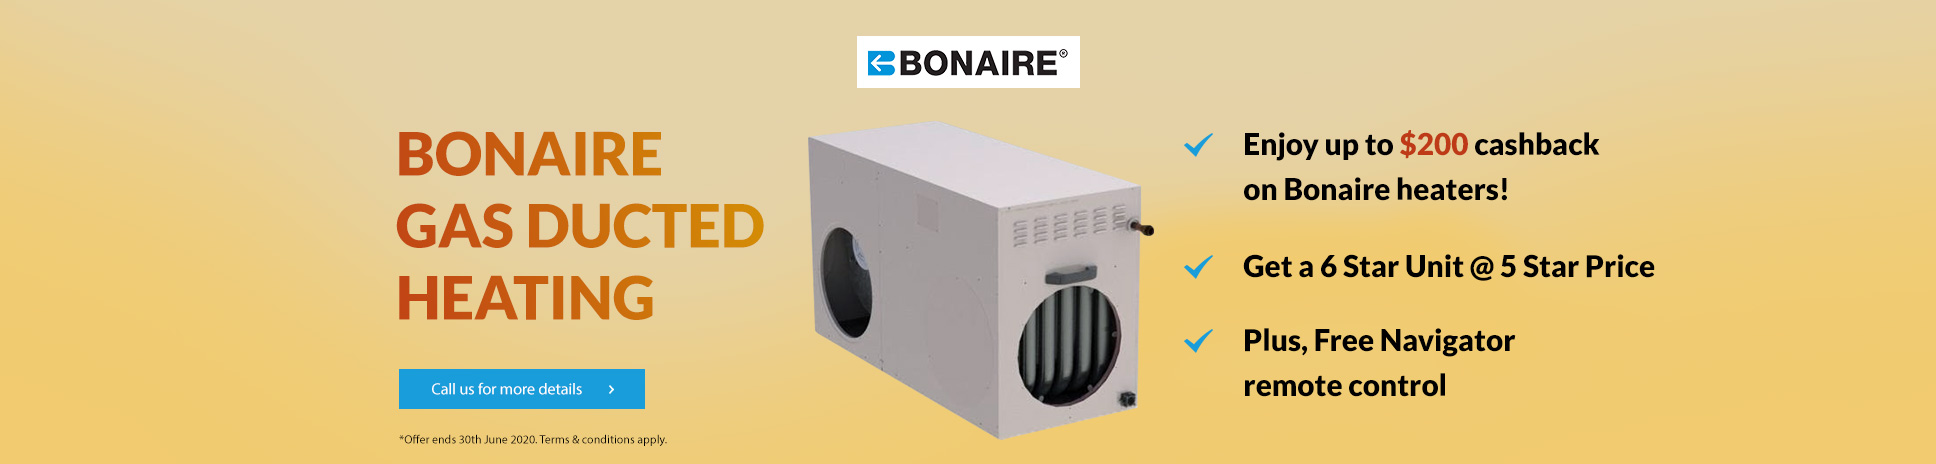 BONAIRE GAS DUCTED HEATING